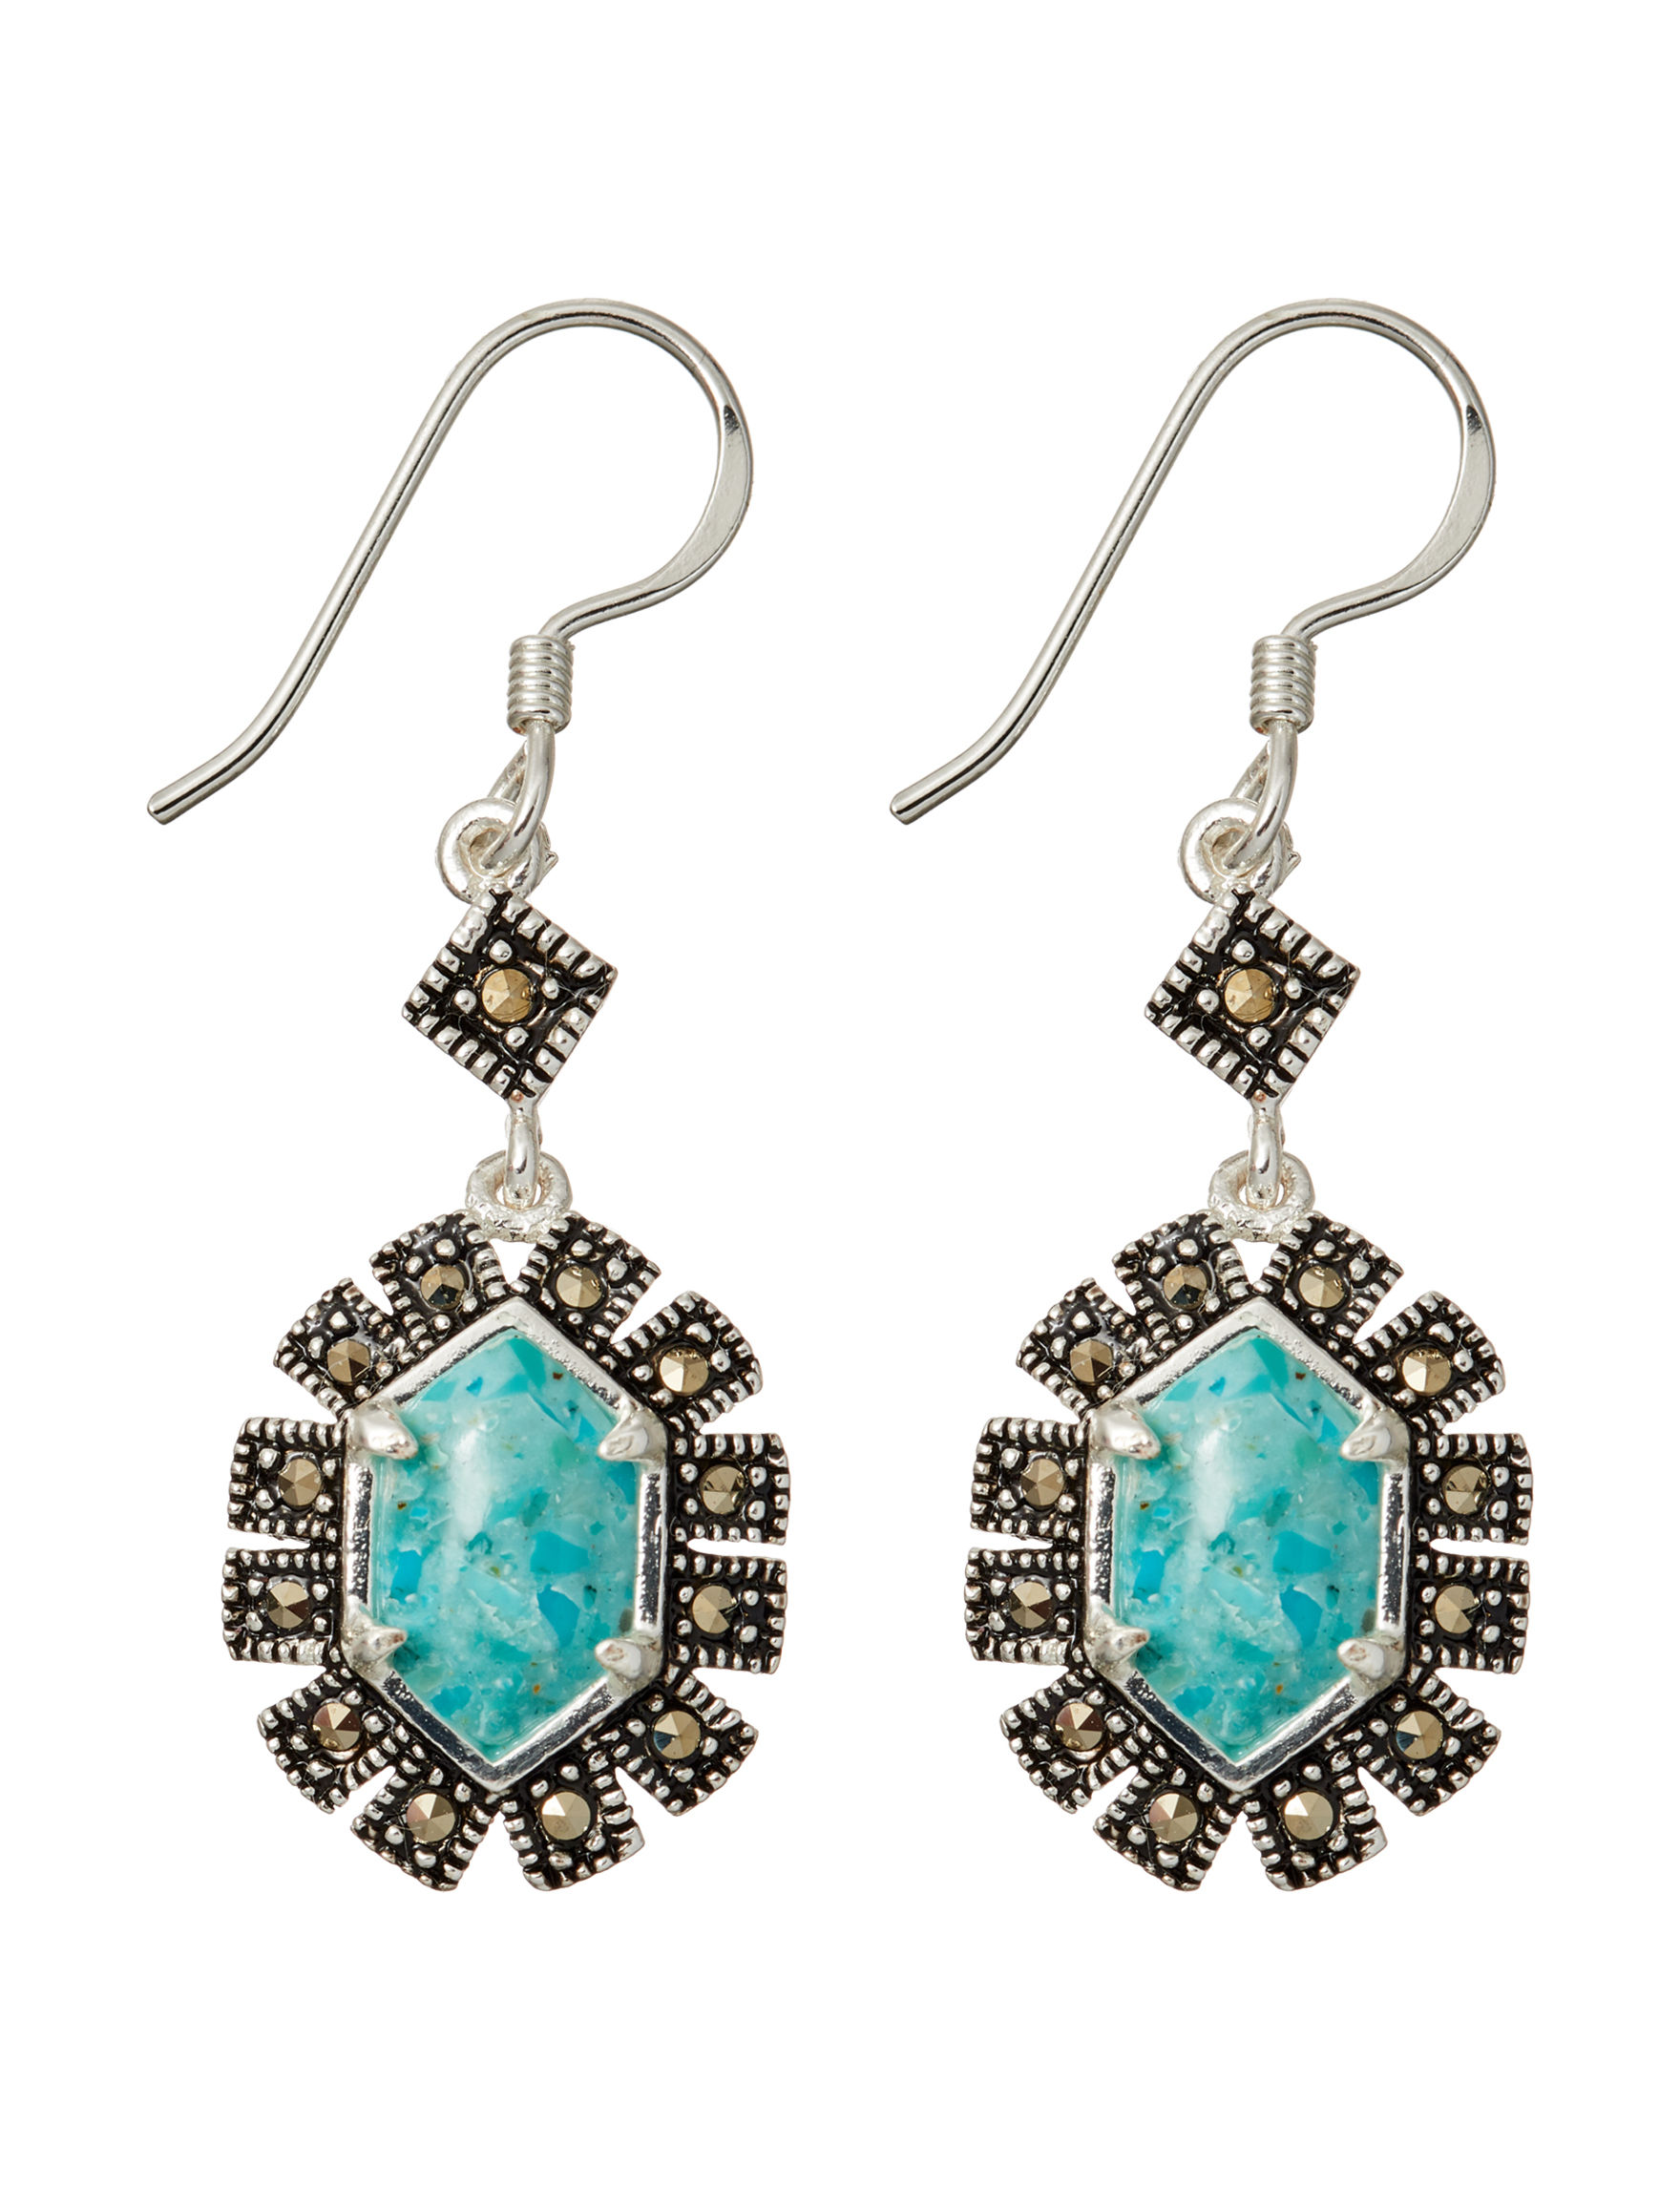 Marsala Turquoise Drops Earrings Fine Jewelry